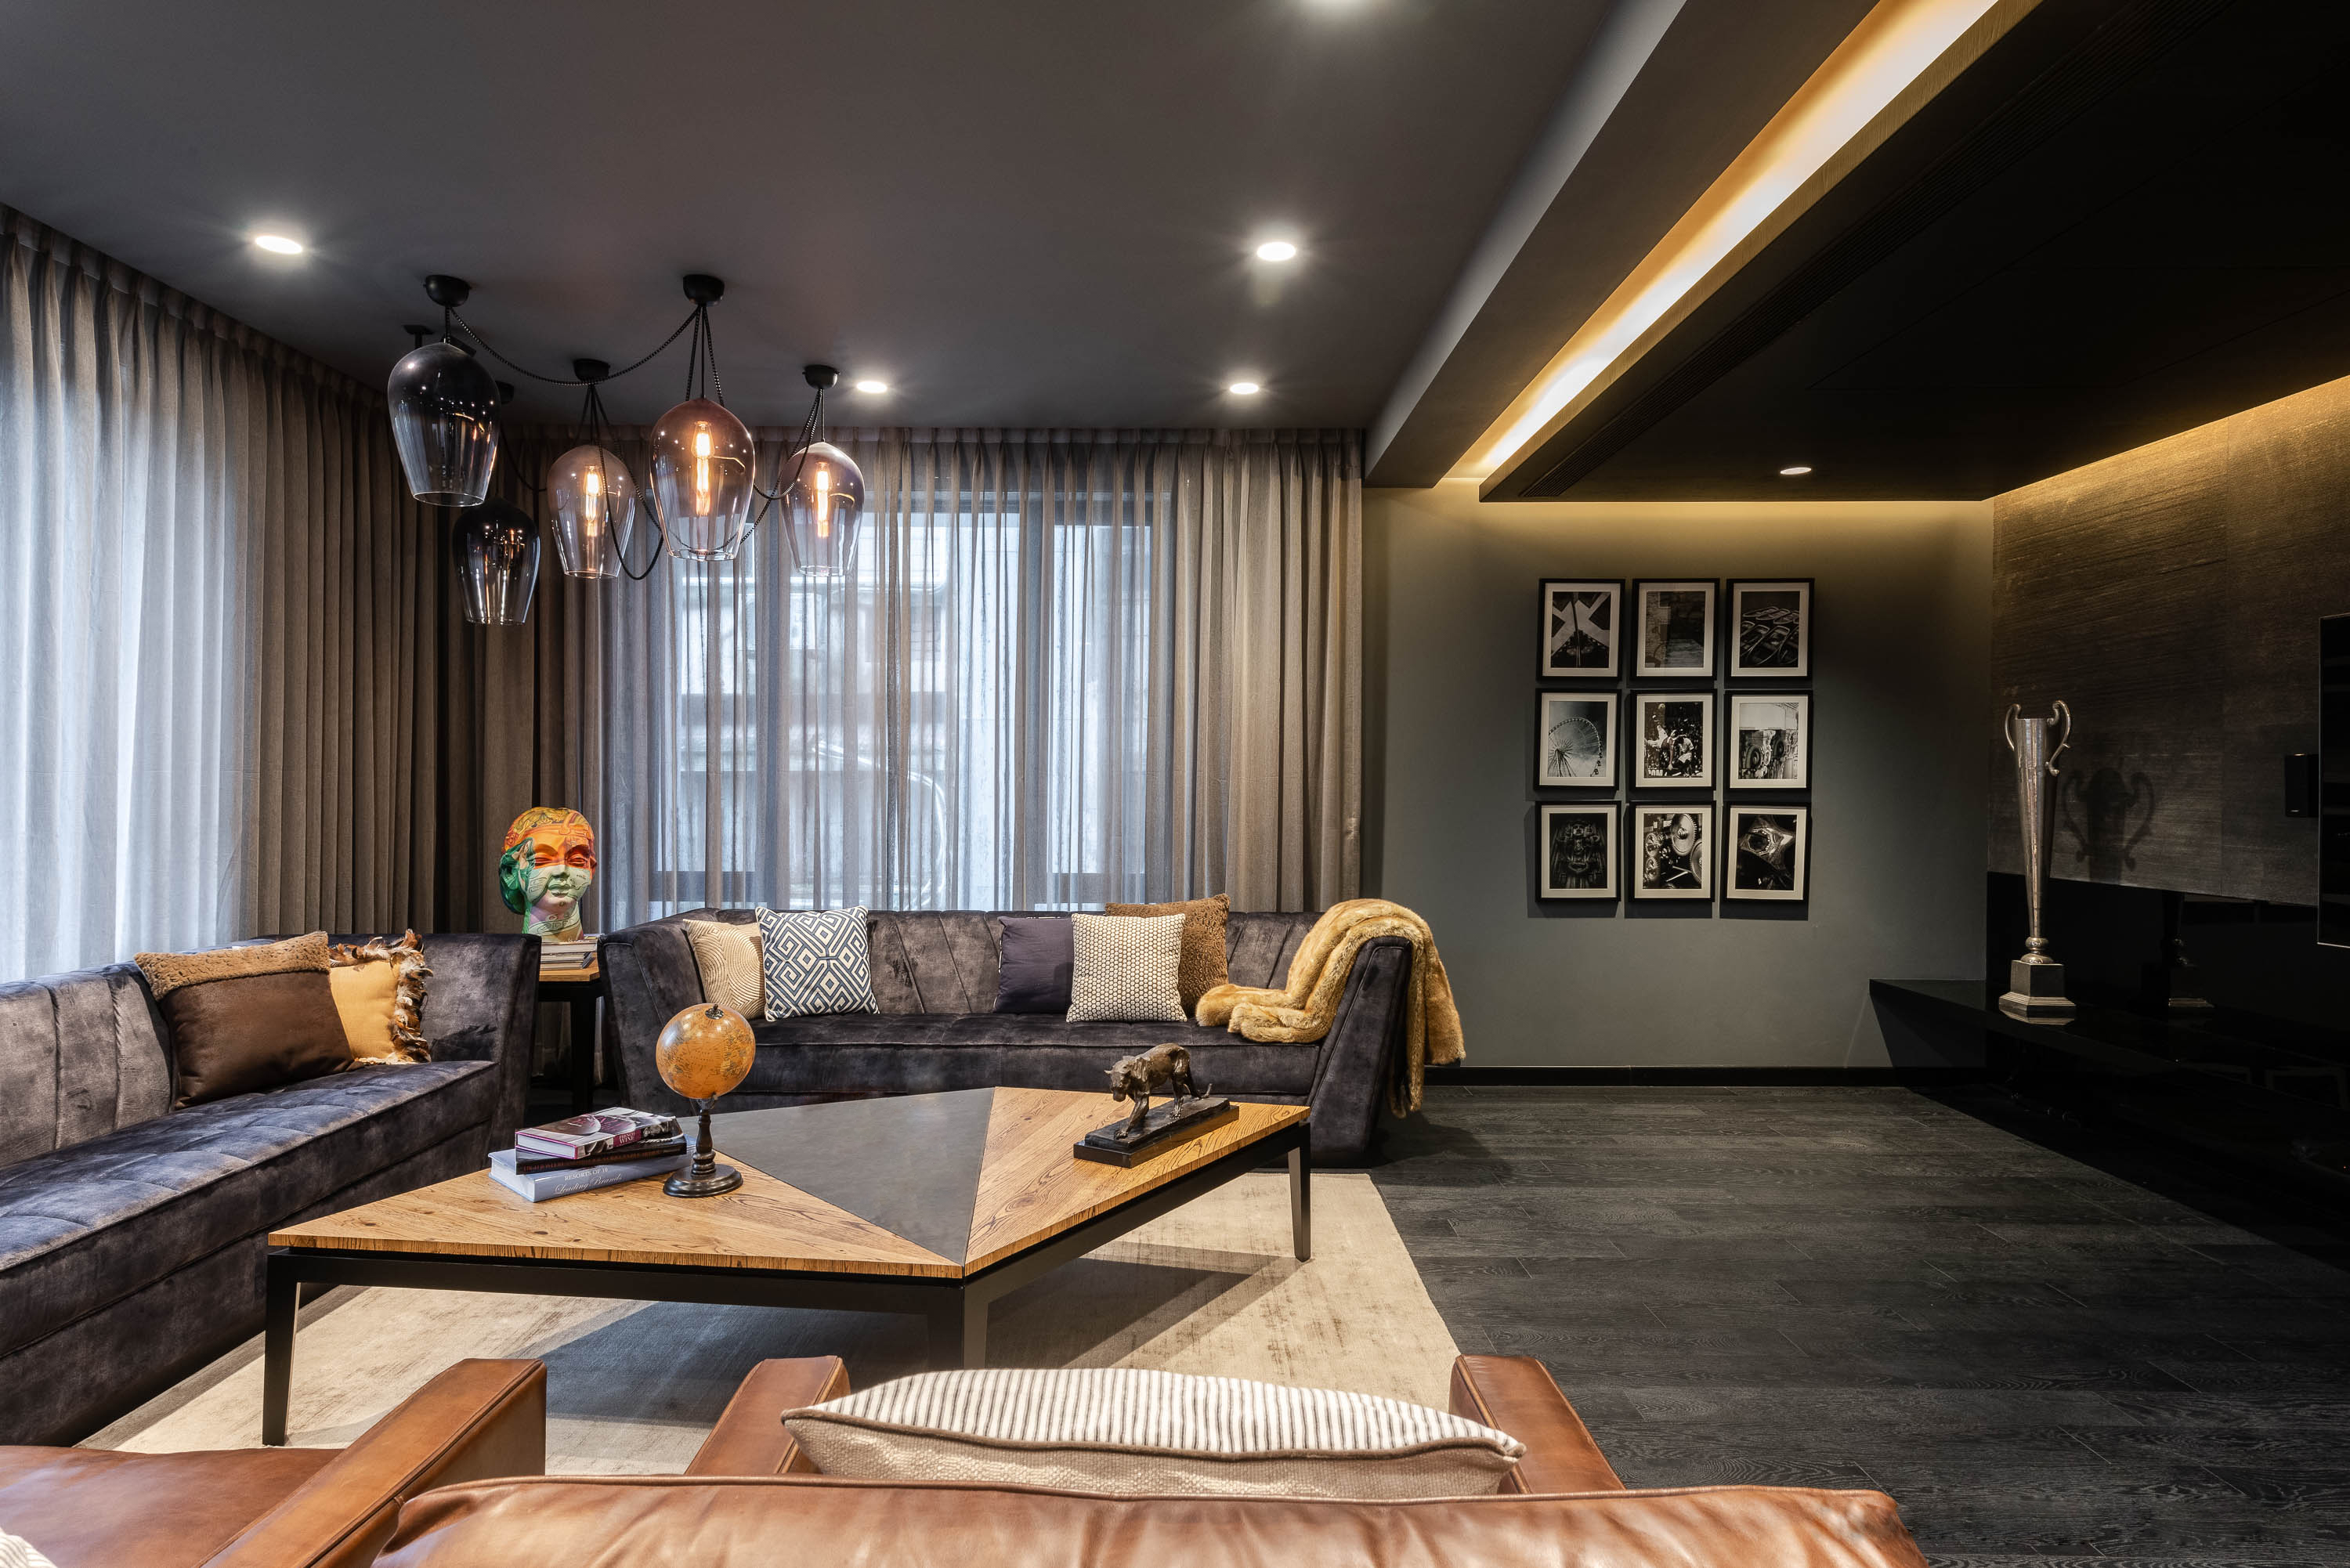 The Duplex at Queens Park by A Square Designs